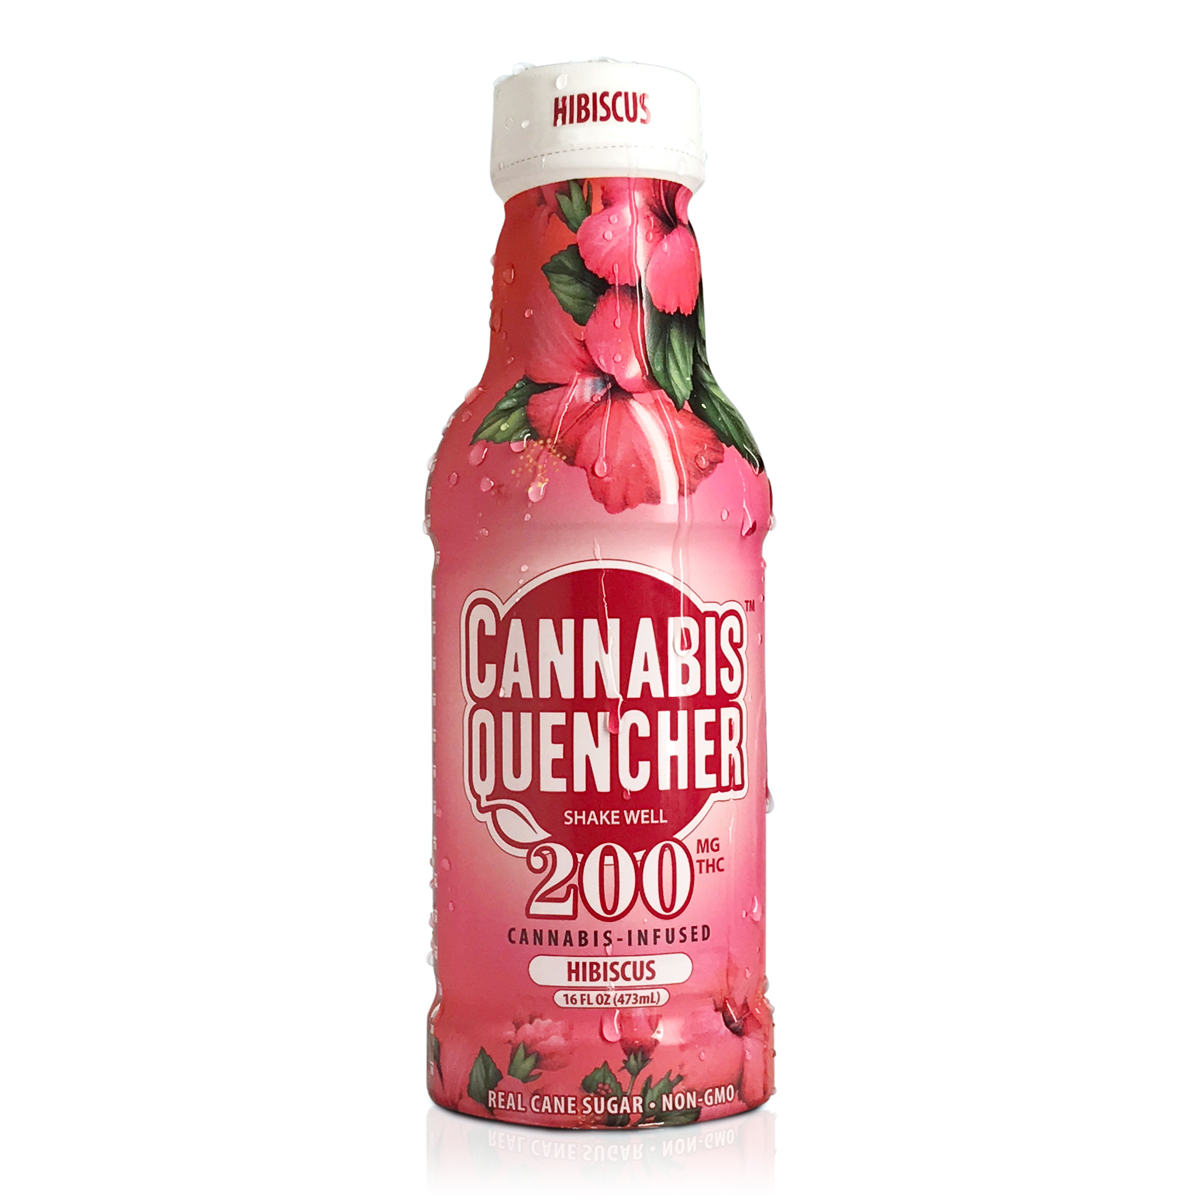 Hibiscus Cannabis Quencher